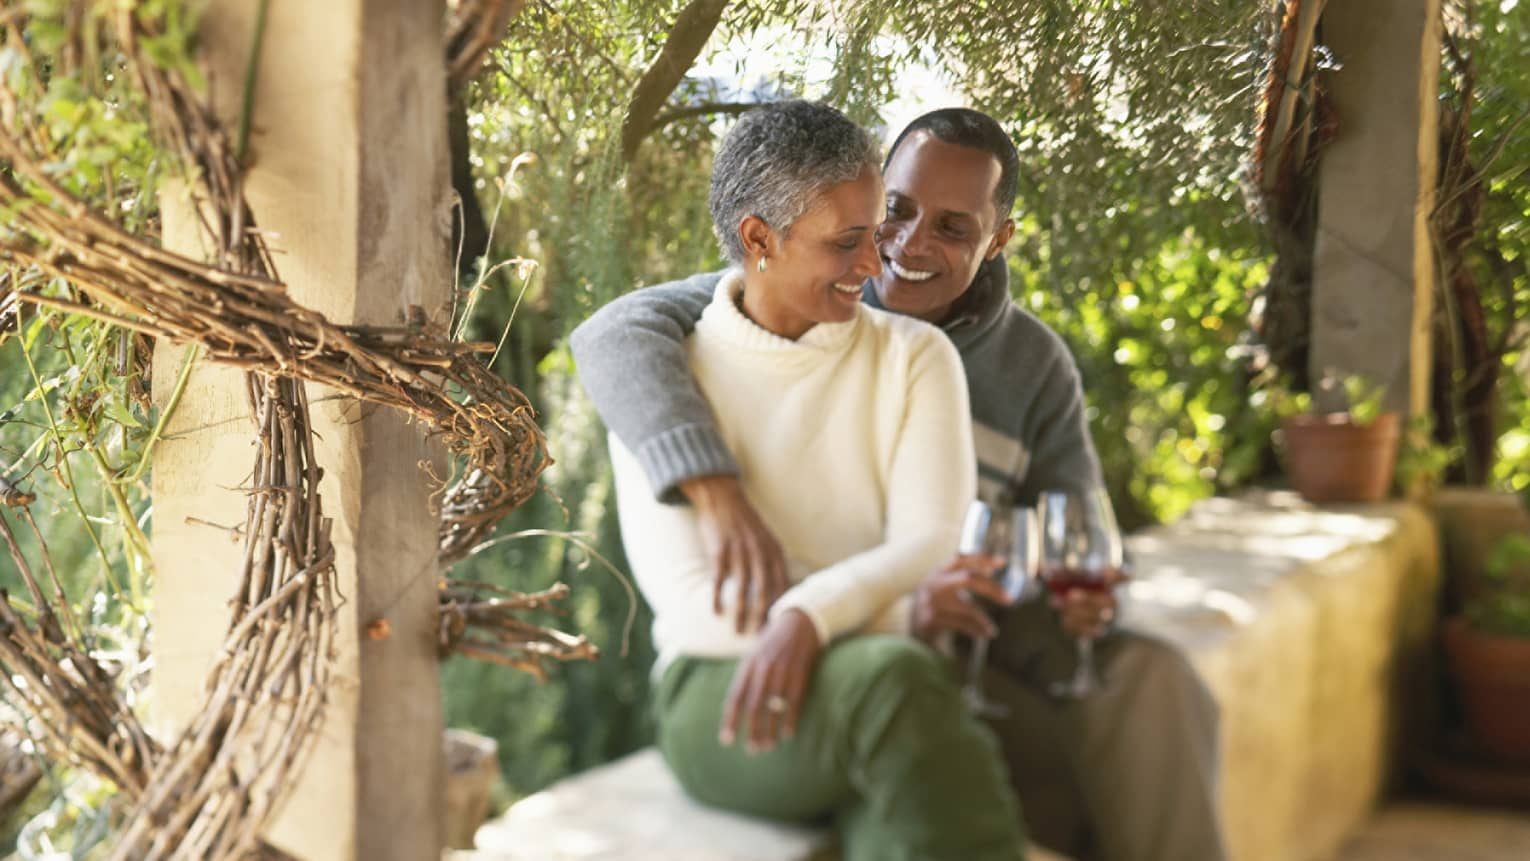 Smiling man and woman holding glasses of wine cuddle on stone bench beside wood post